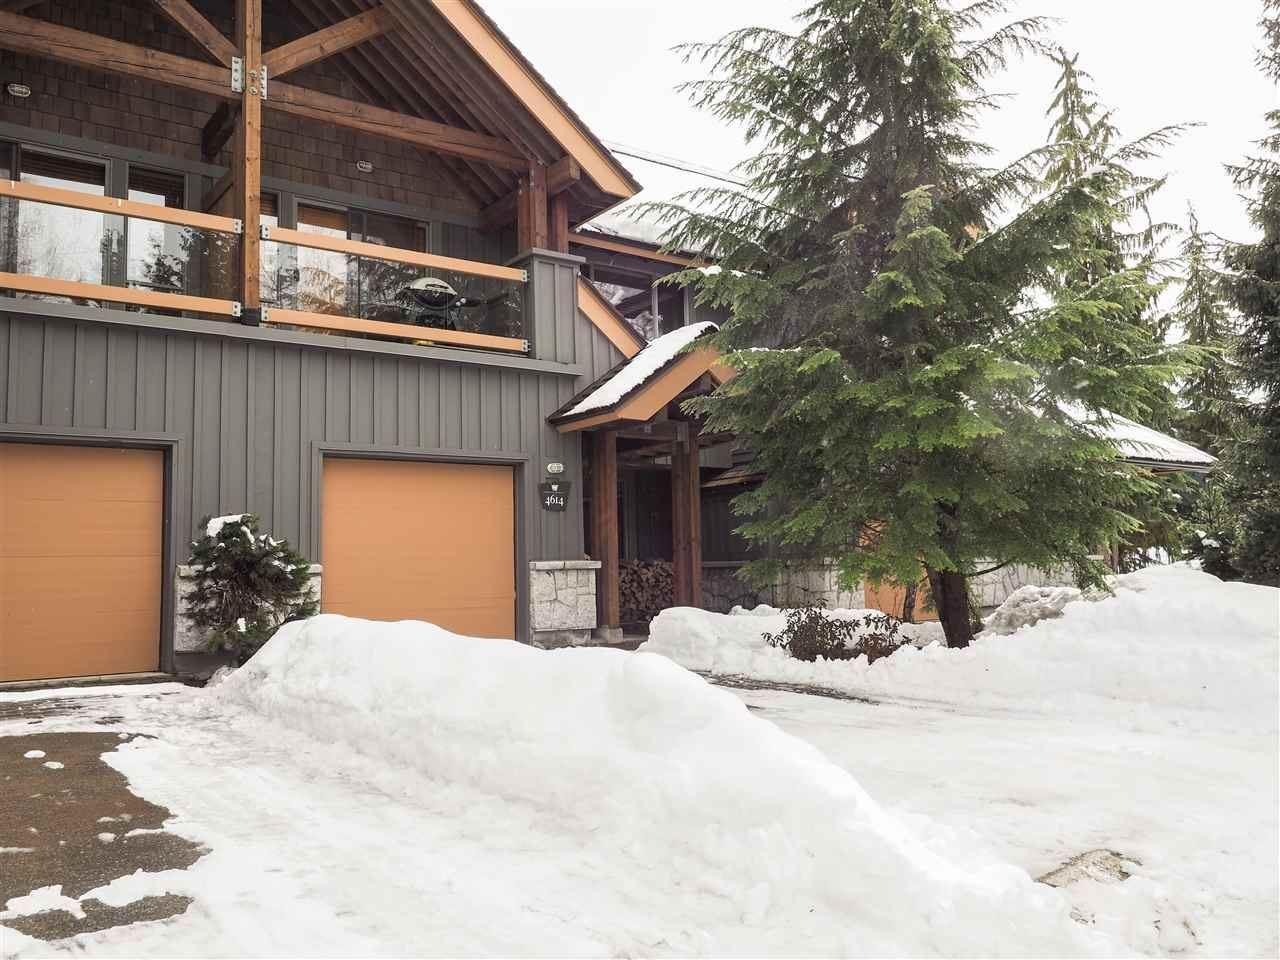 Main Photo: 4614 MONTEBELLO Place in Whistler: Whistler Village Townhouse for sale : MLS®# R2528597